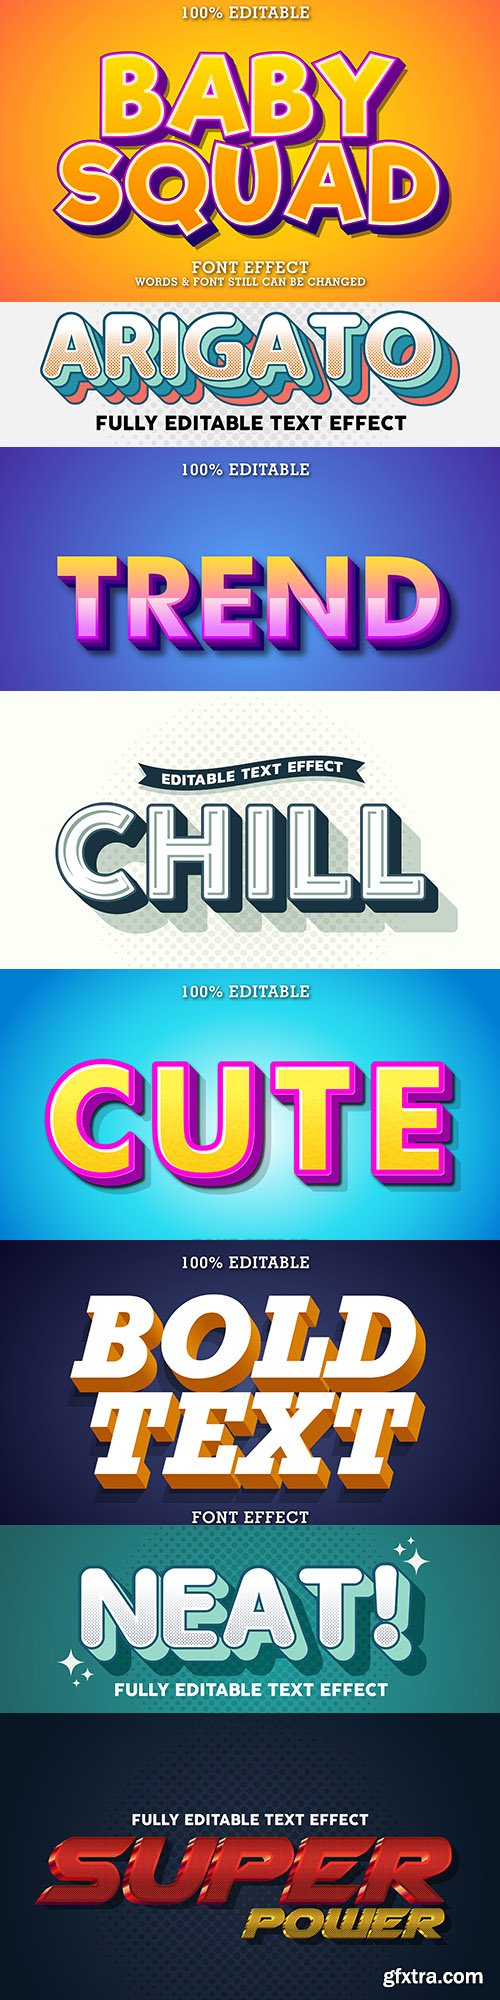 Editable font effect text collection illustration 20